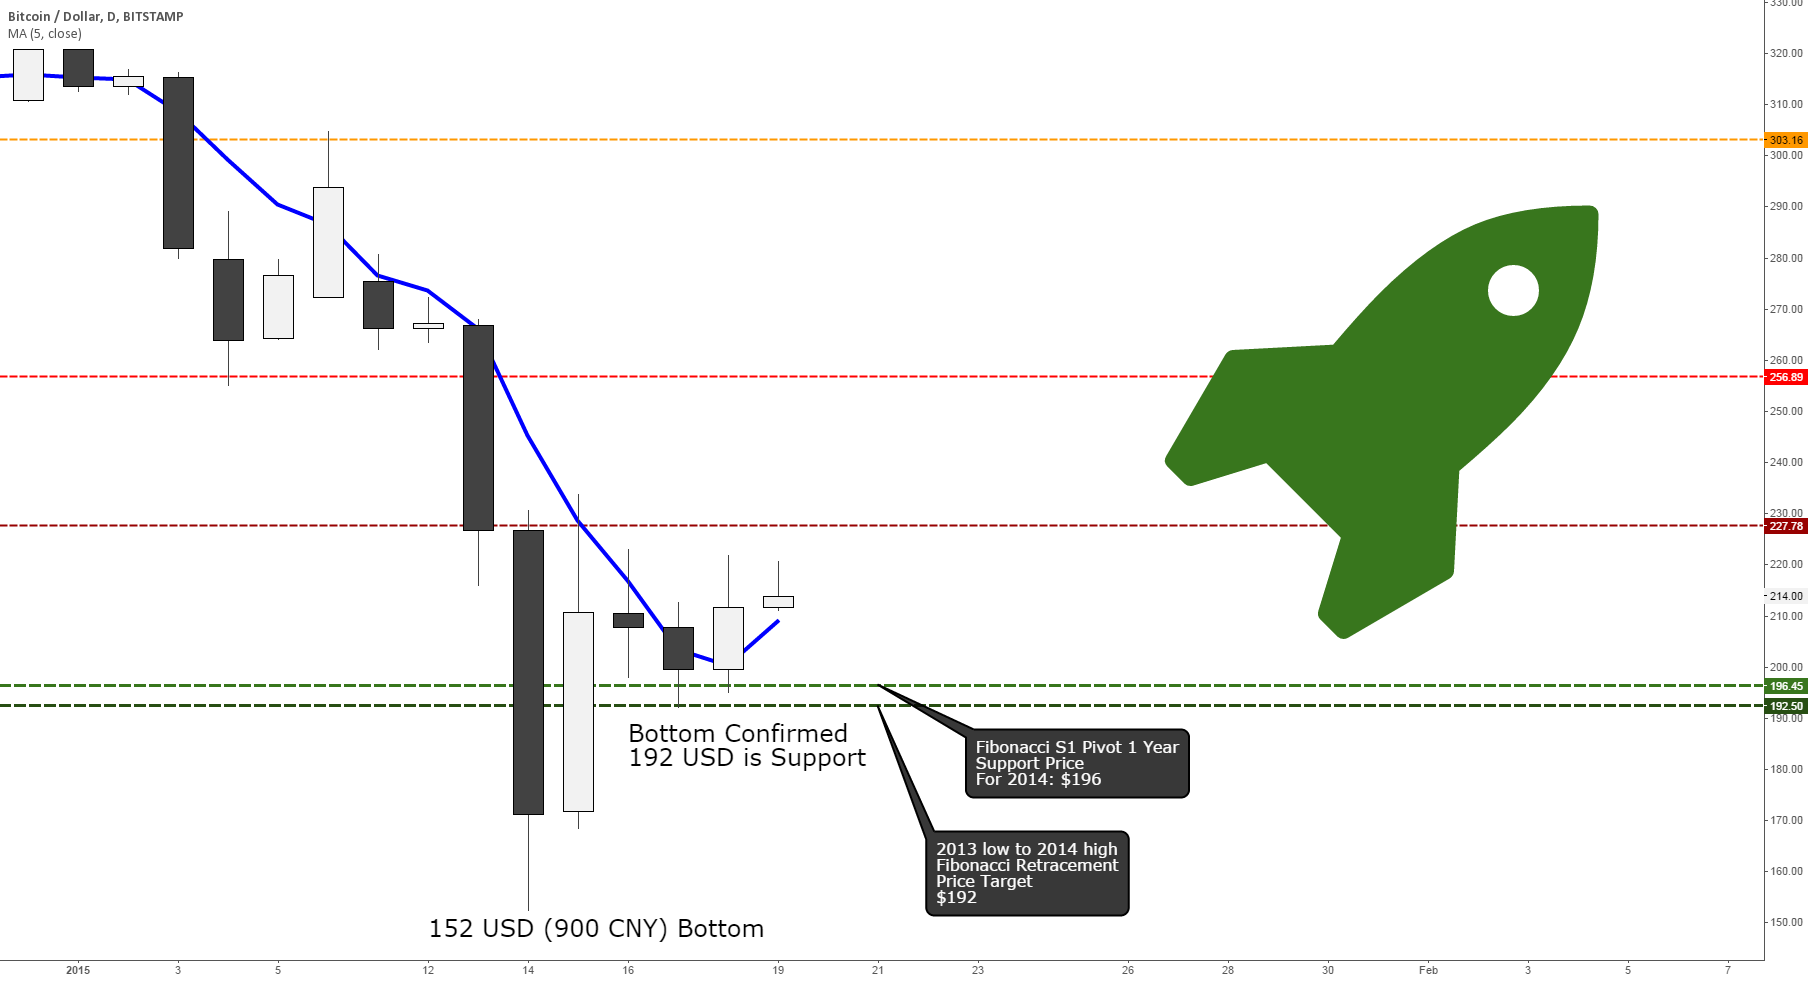 Bitcoin Bullish Reversal: January 2015